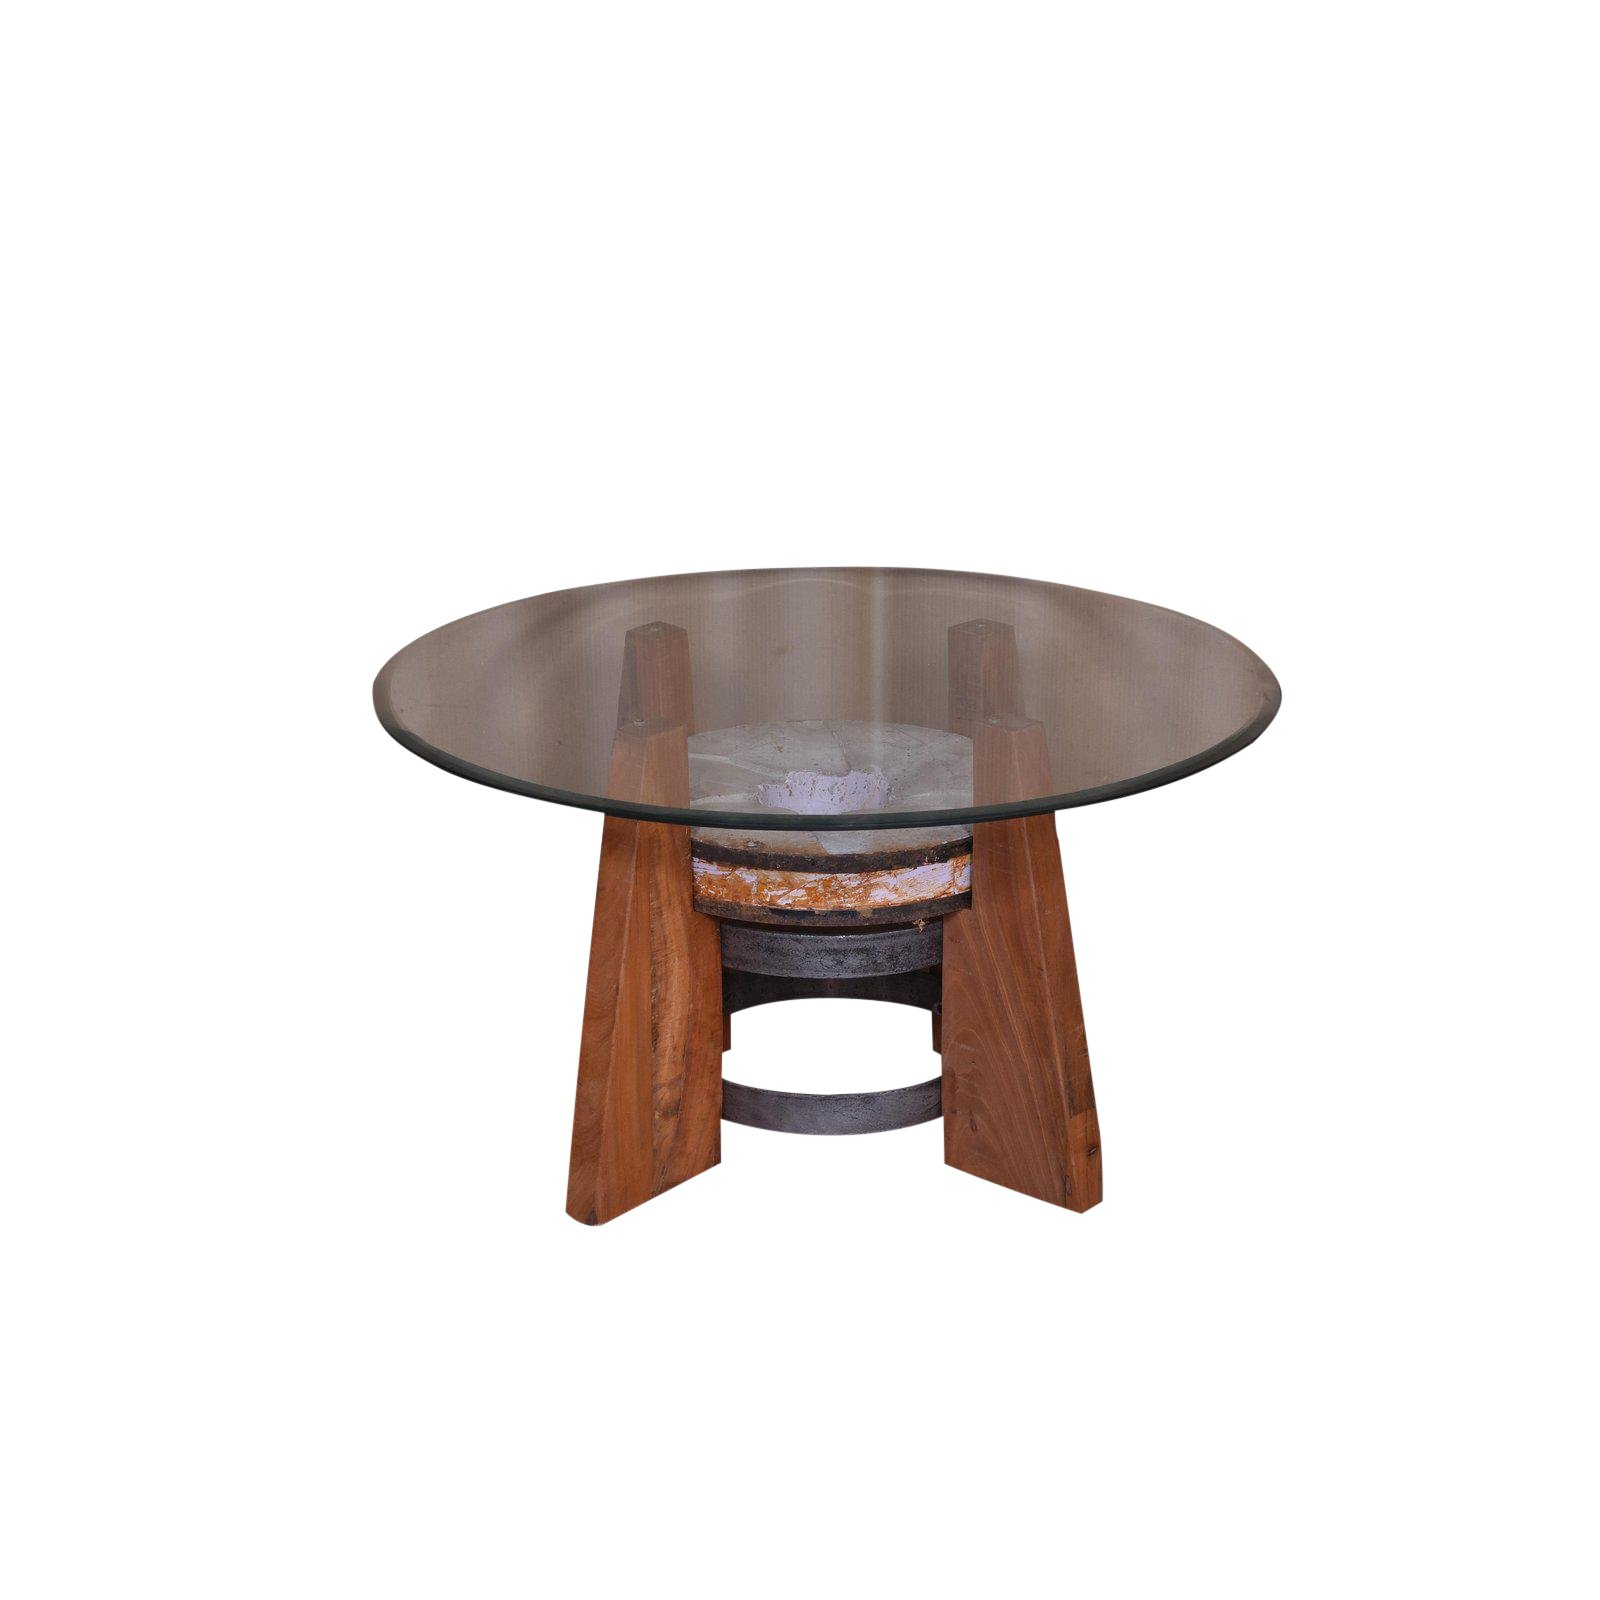 round coffee table with glass top living room wood and wooden accent rustic natural chairish small chairside white end storage buffet lamps square target garden furniture pier one